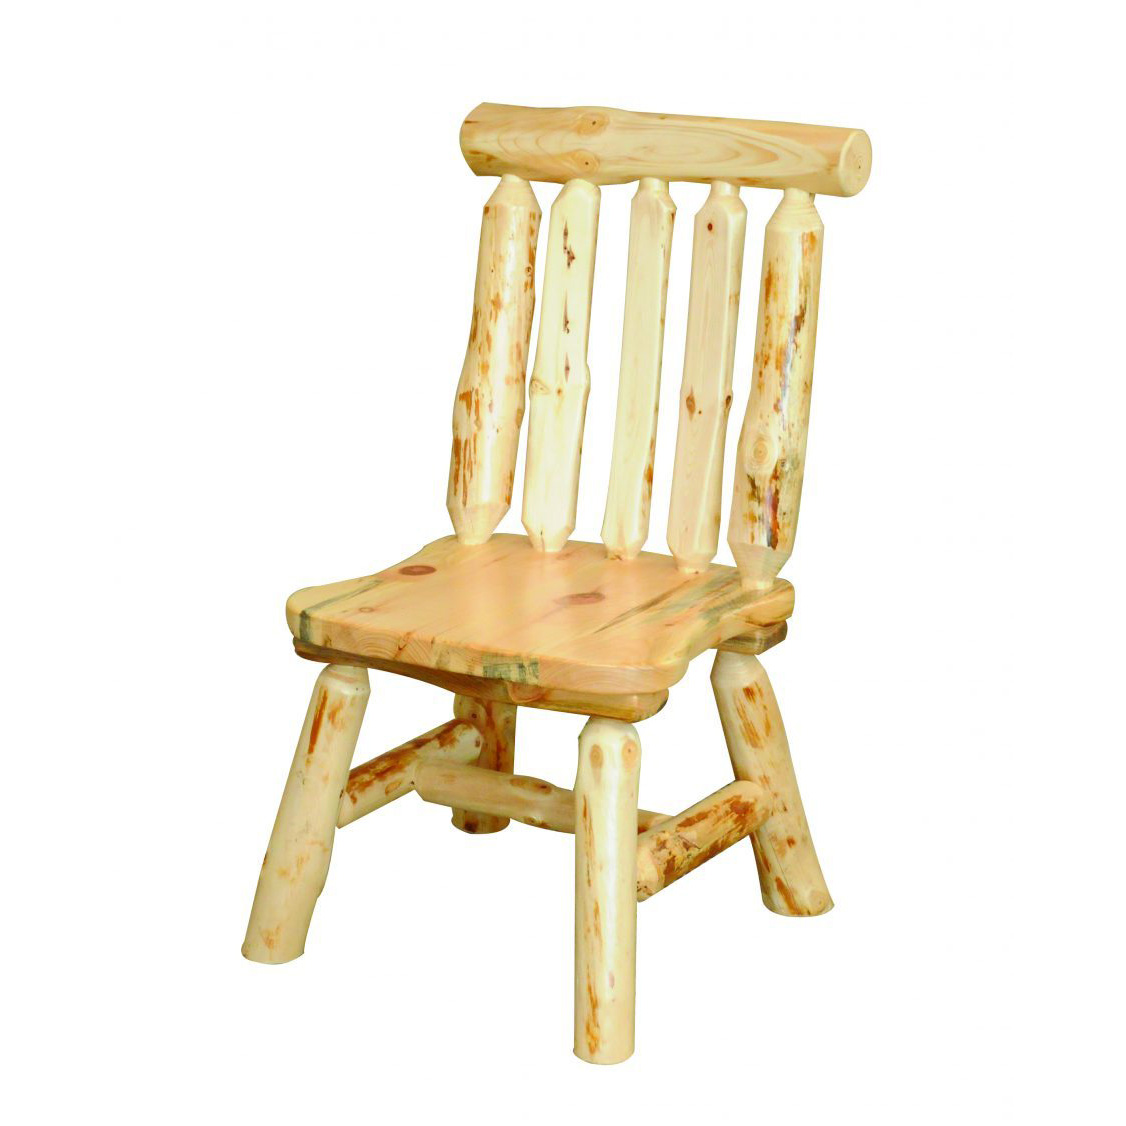 Pine Chairs Knotty Pine Dining Chair Amish Crafted Furniture